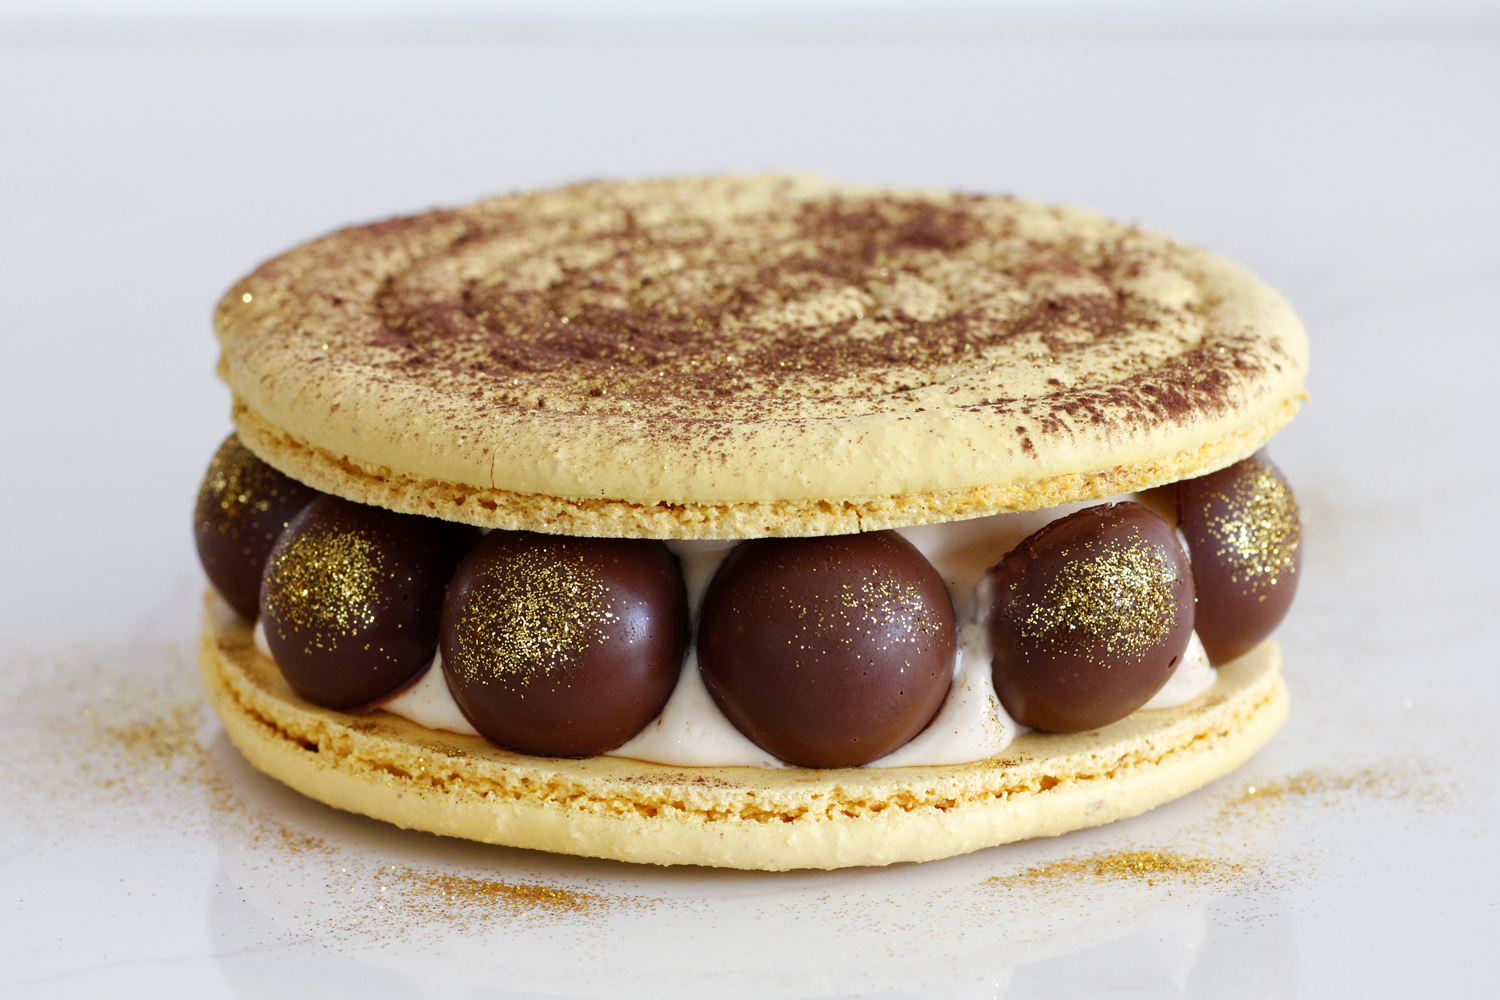 Peanut Butter Macaron Cake with Banana and Chocolate